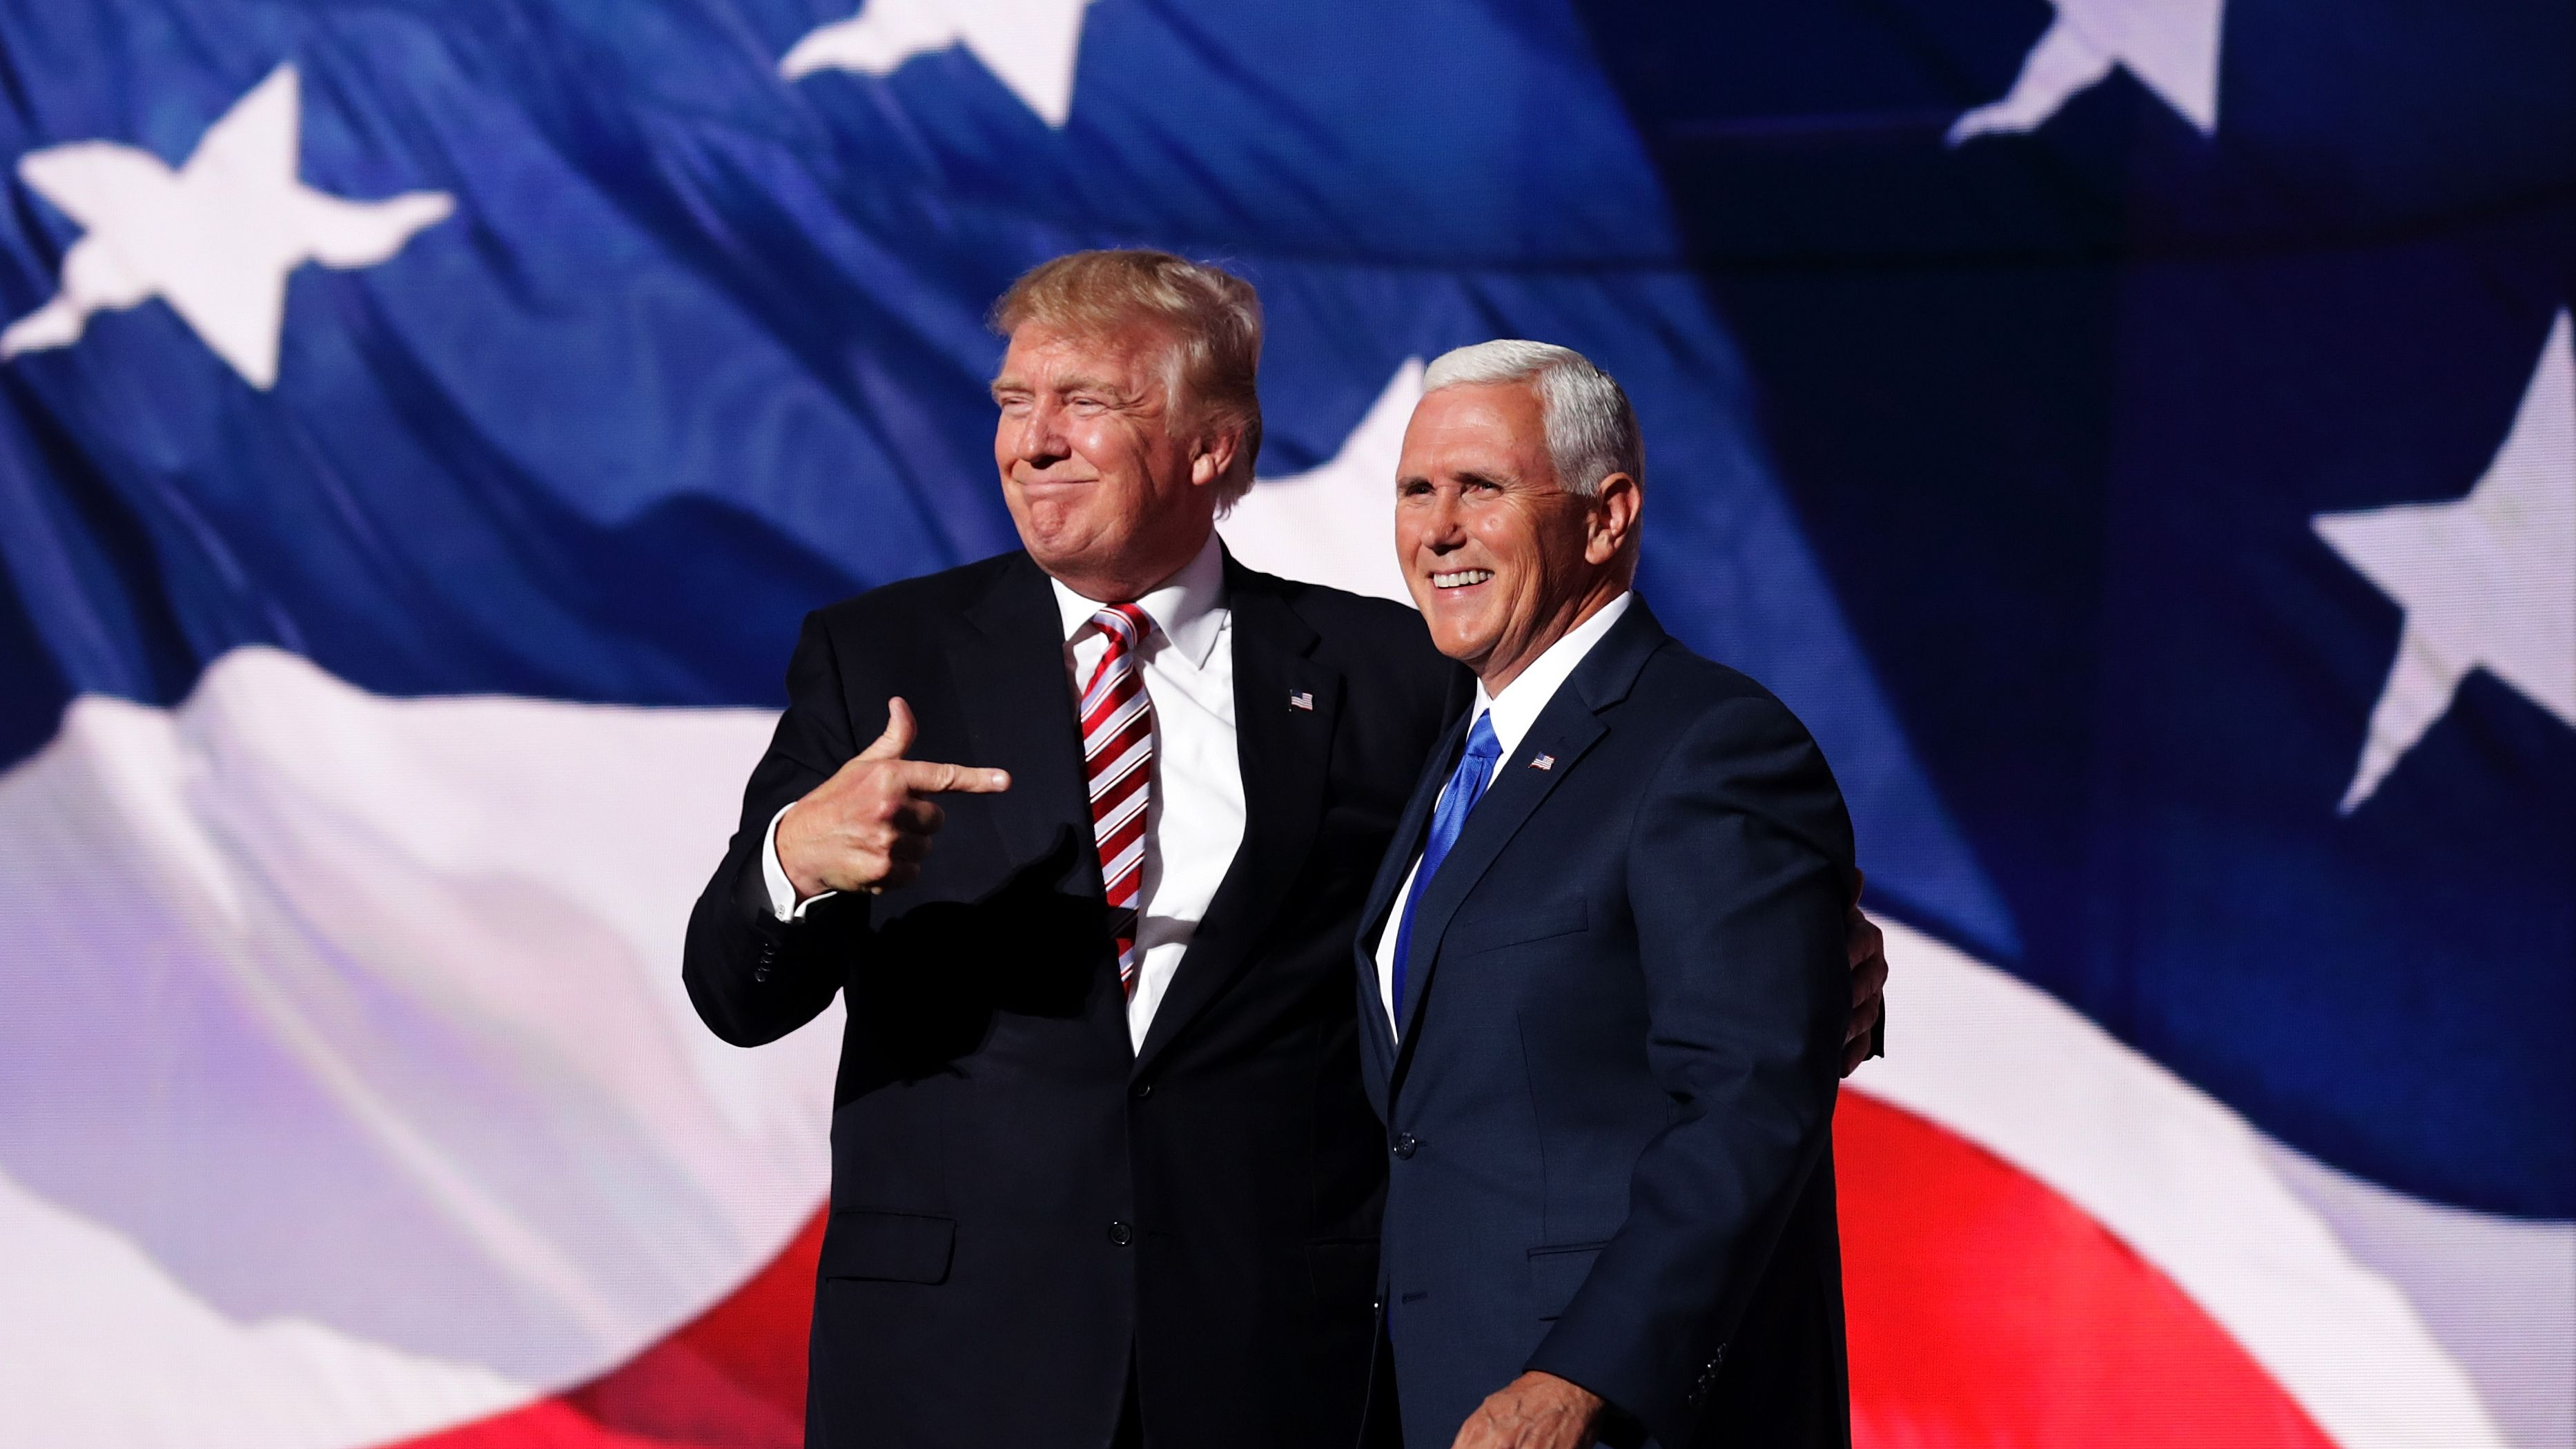 Donald Trump and Mike Pence: Tensions at the top